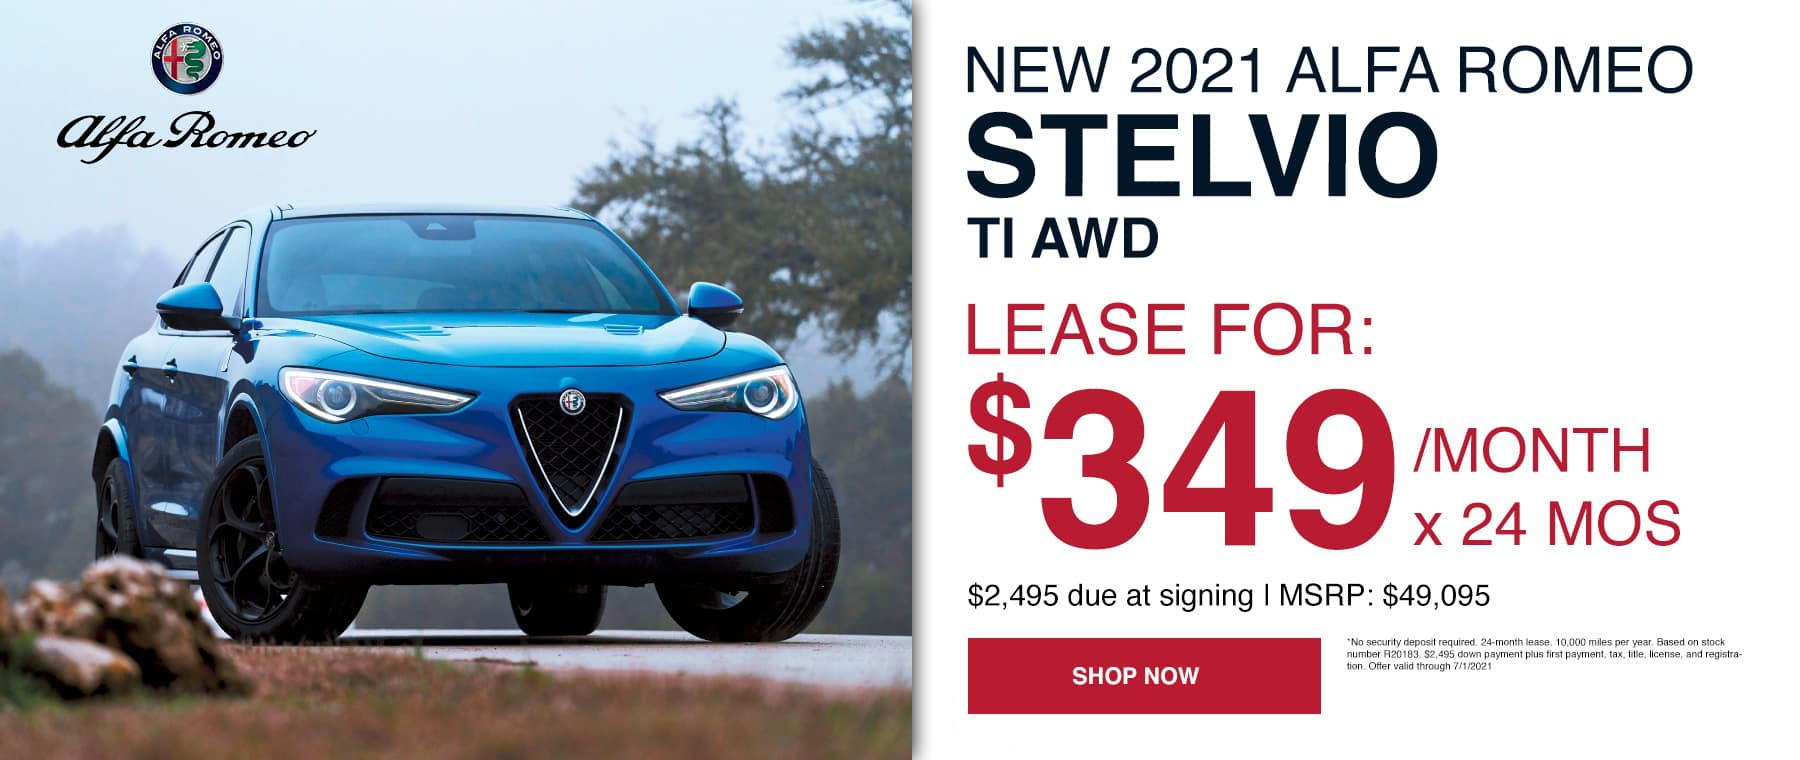 Lease for: $349/month x 24 mos $2,495 due at signing | MSRP: $49,095